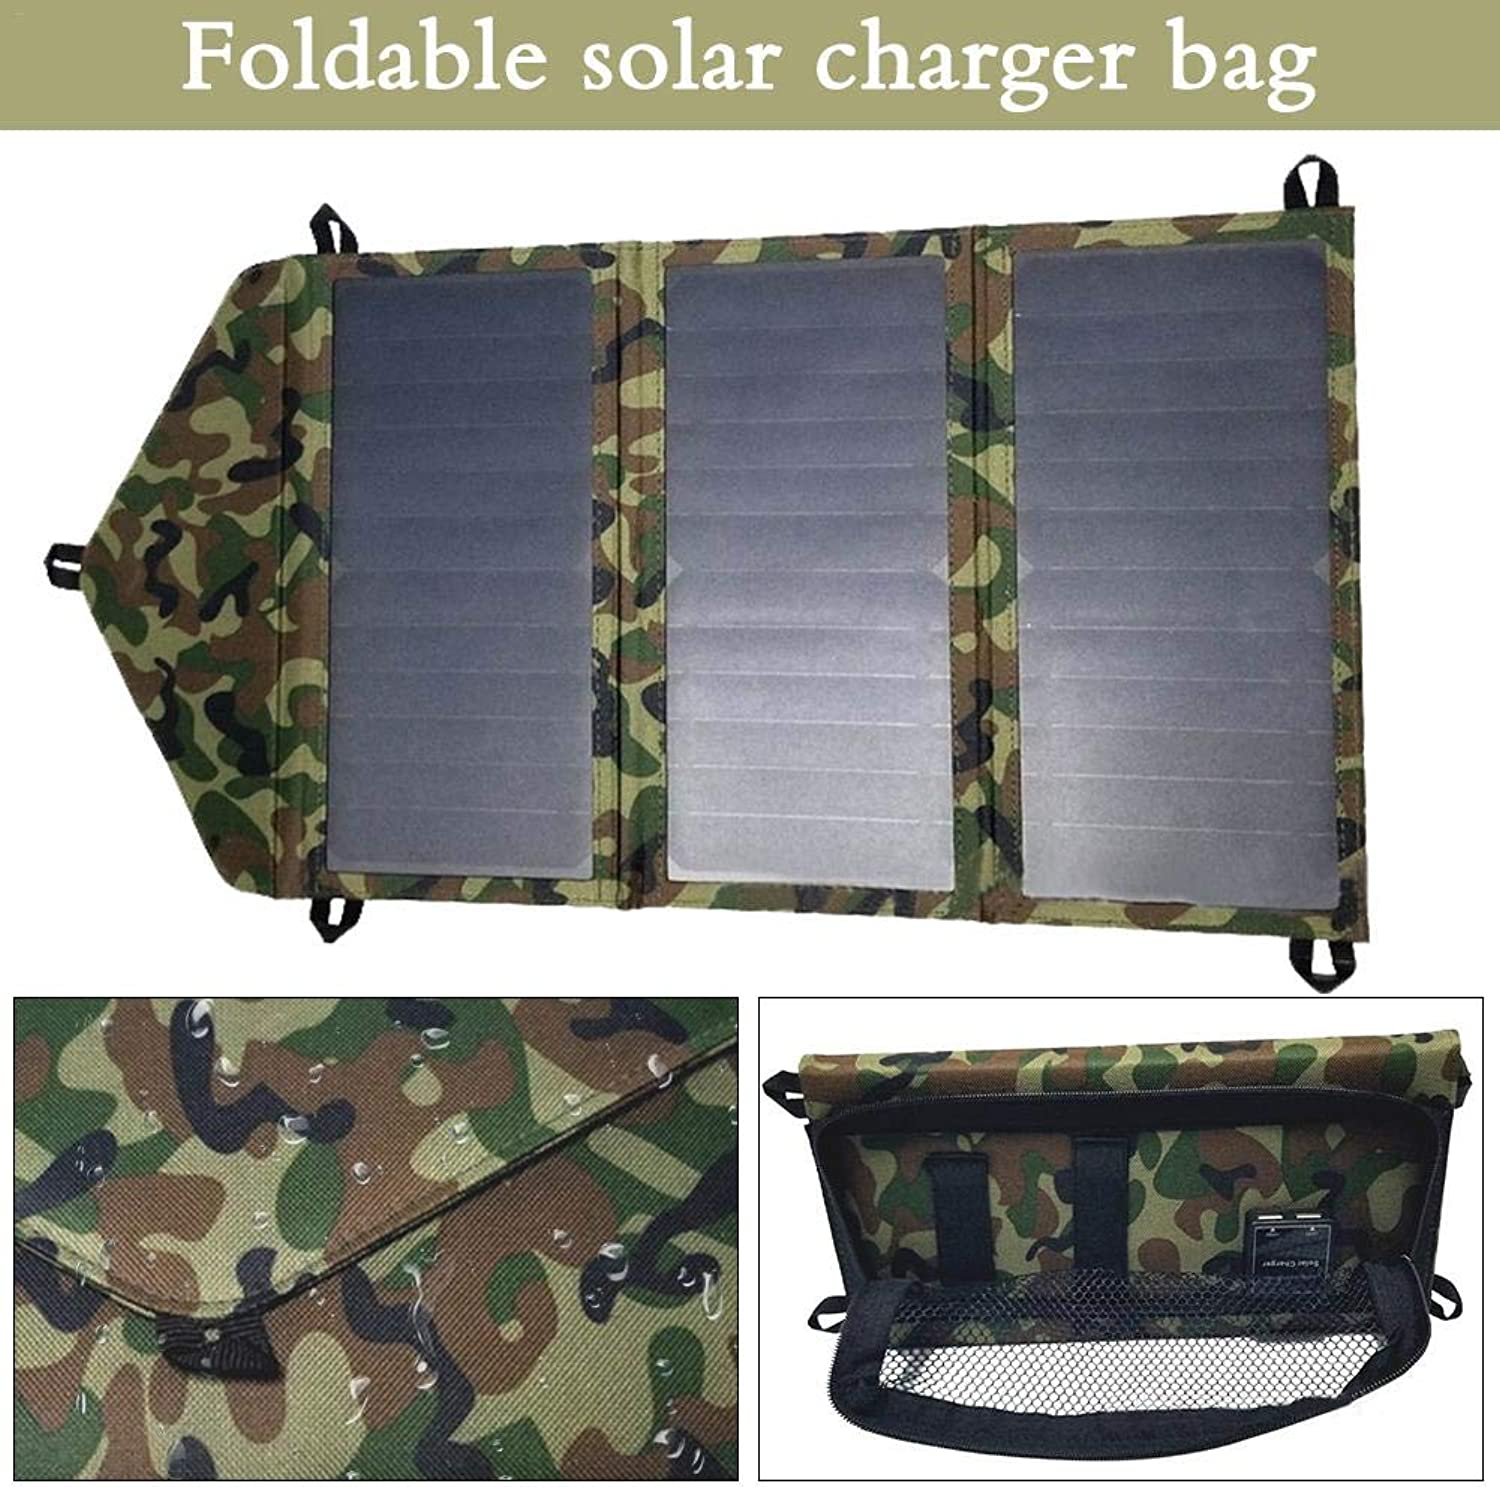 Singa-Z Solar Bag Mobile Phone Charging Board Solar Bag Outdoor Foldable Mutiple Function Solar Bag for Travel Outdoor Hiking